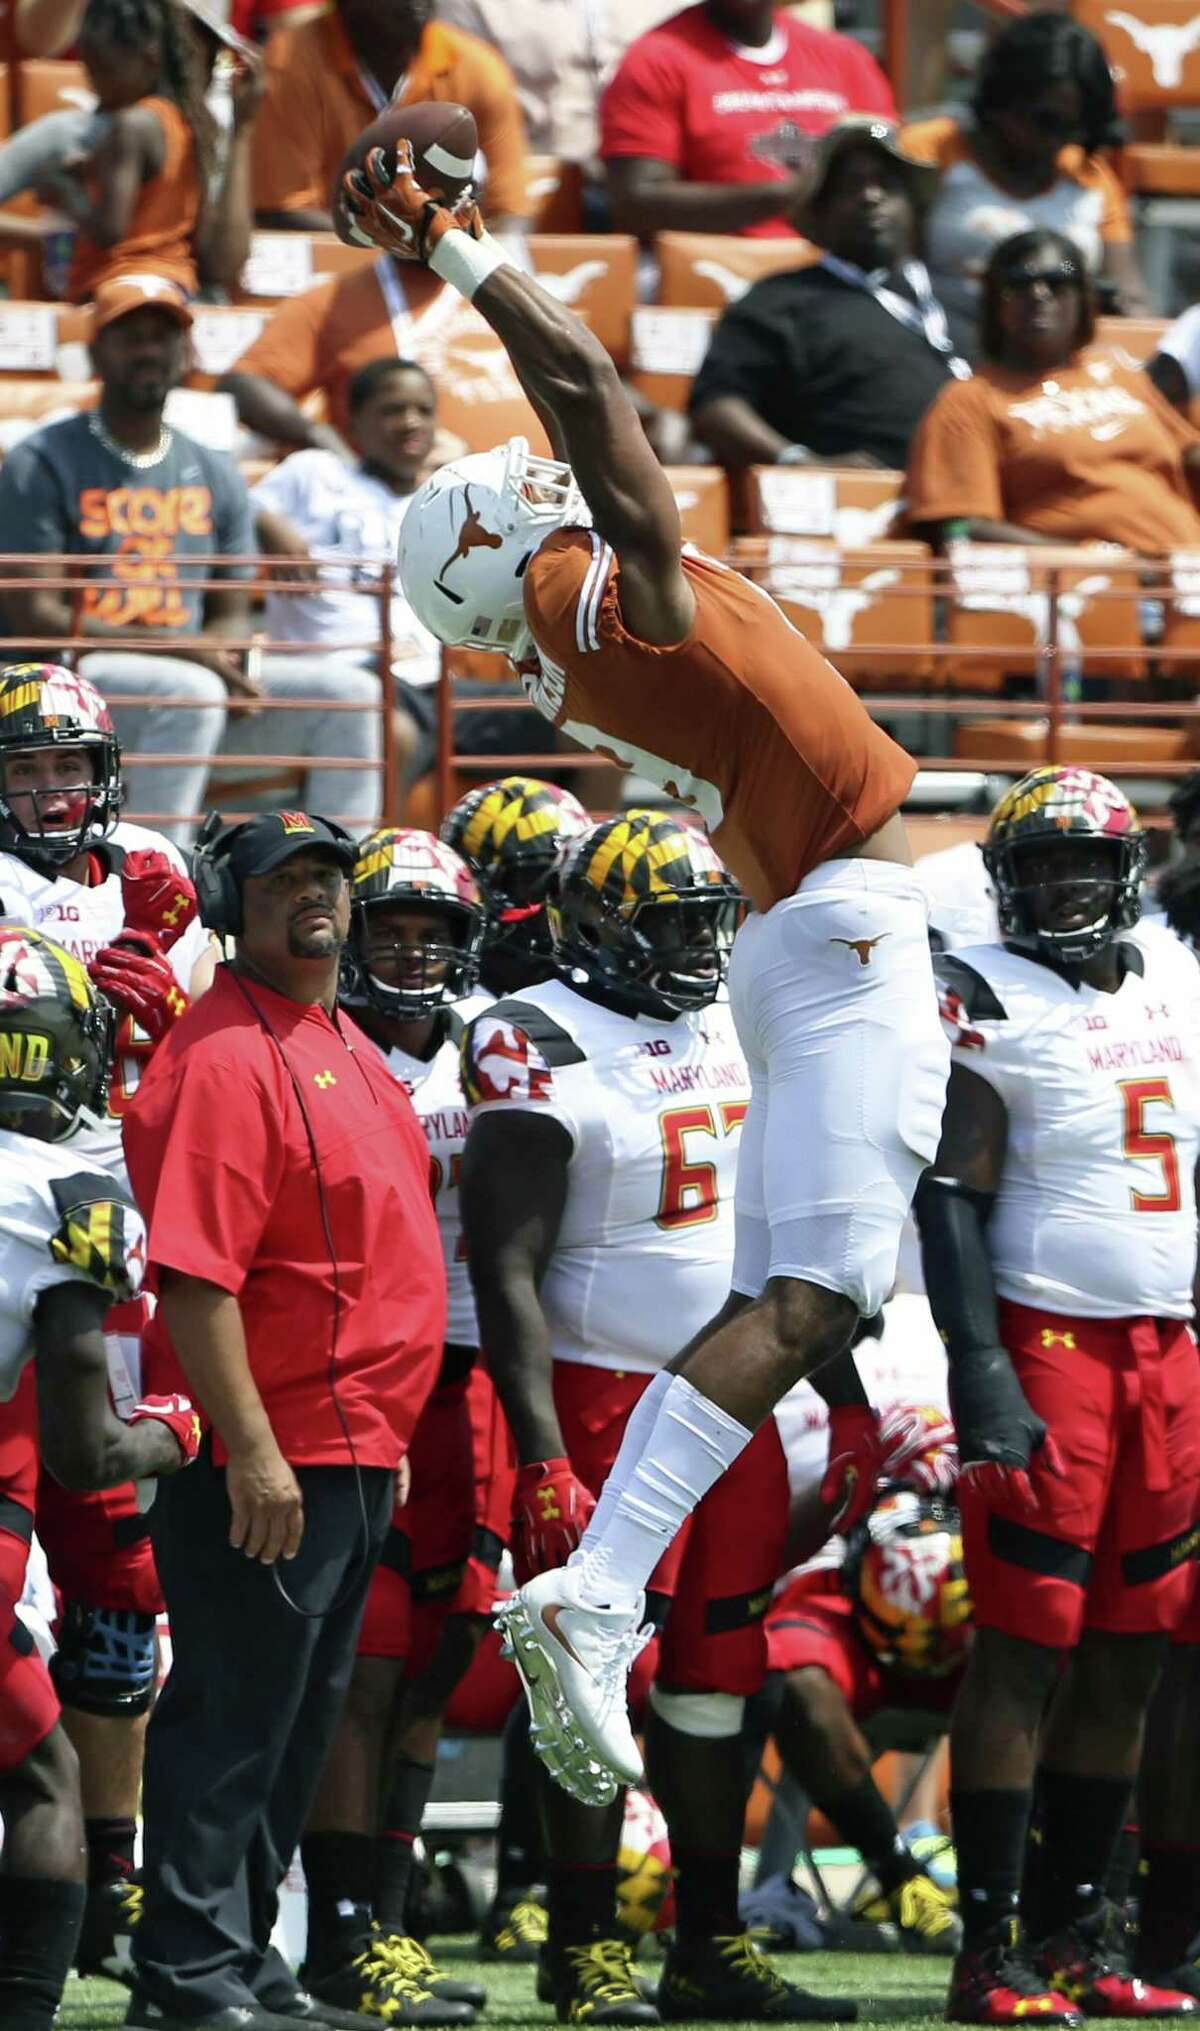 Longhorn receiver Collin Johnson goes high to haul in a pass to the sideline as Texas plays Maryland at DKR Stadium on September 2, 2017.